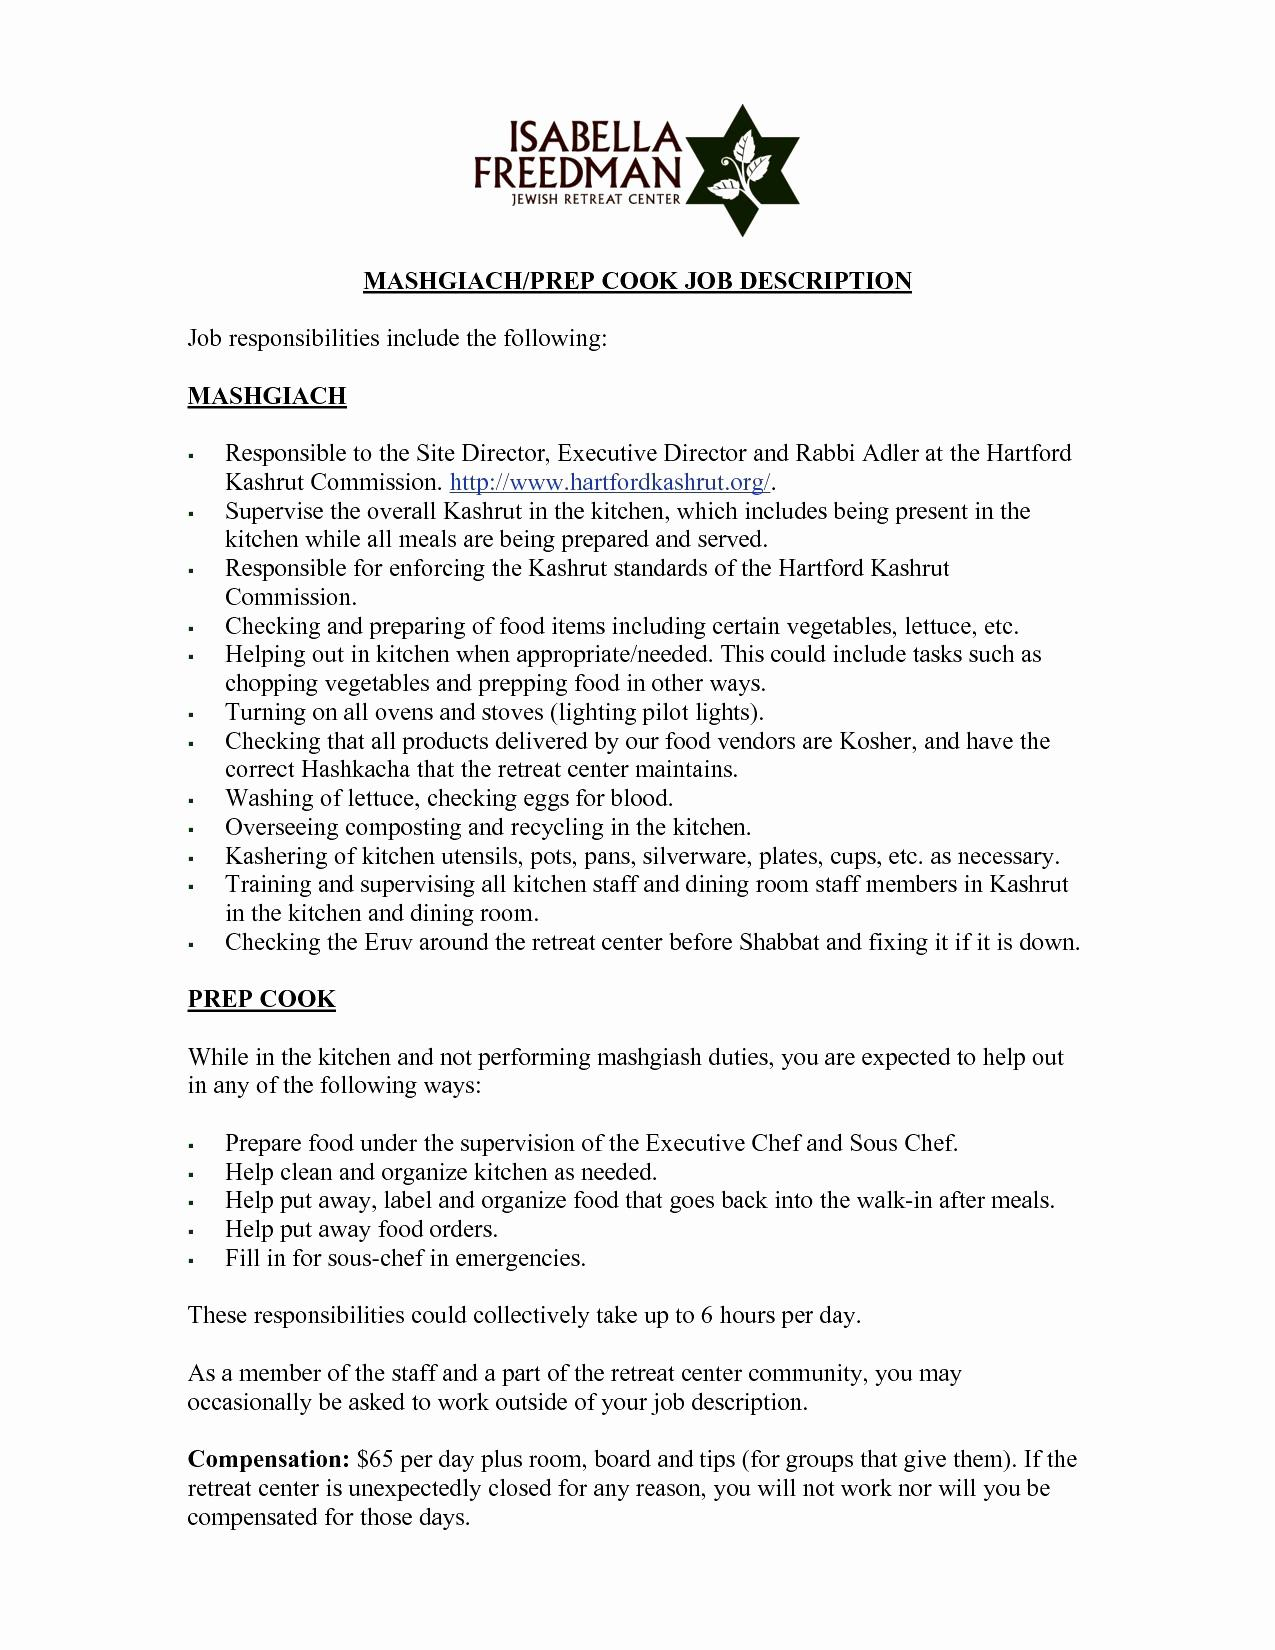 Expert Opinion Letter Template - Resume Character Reference format Elegant Best Example Resume Cover